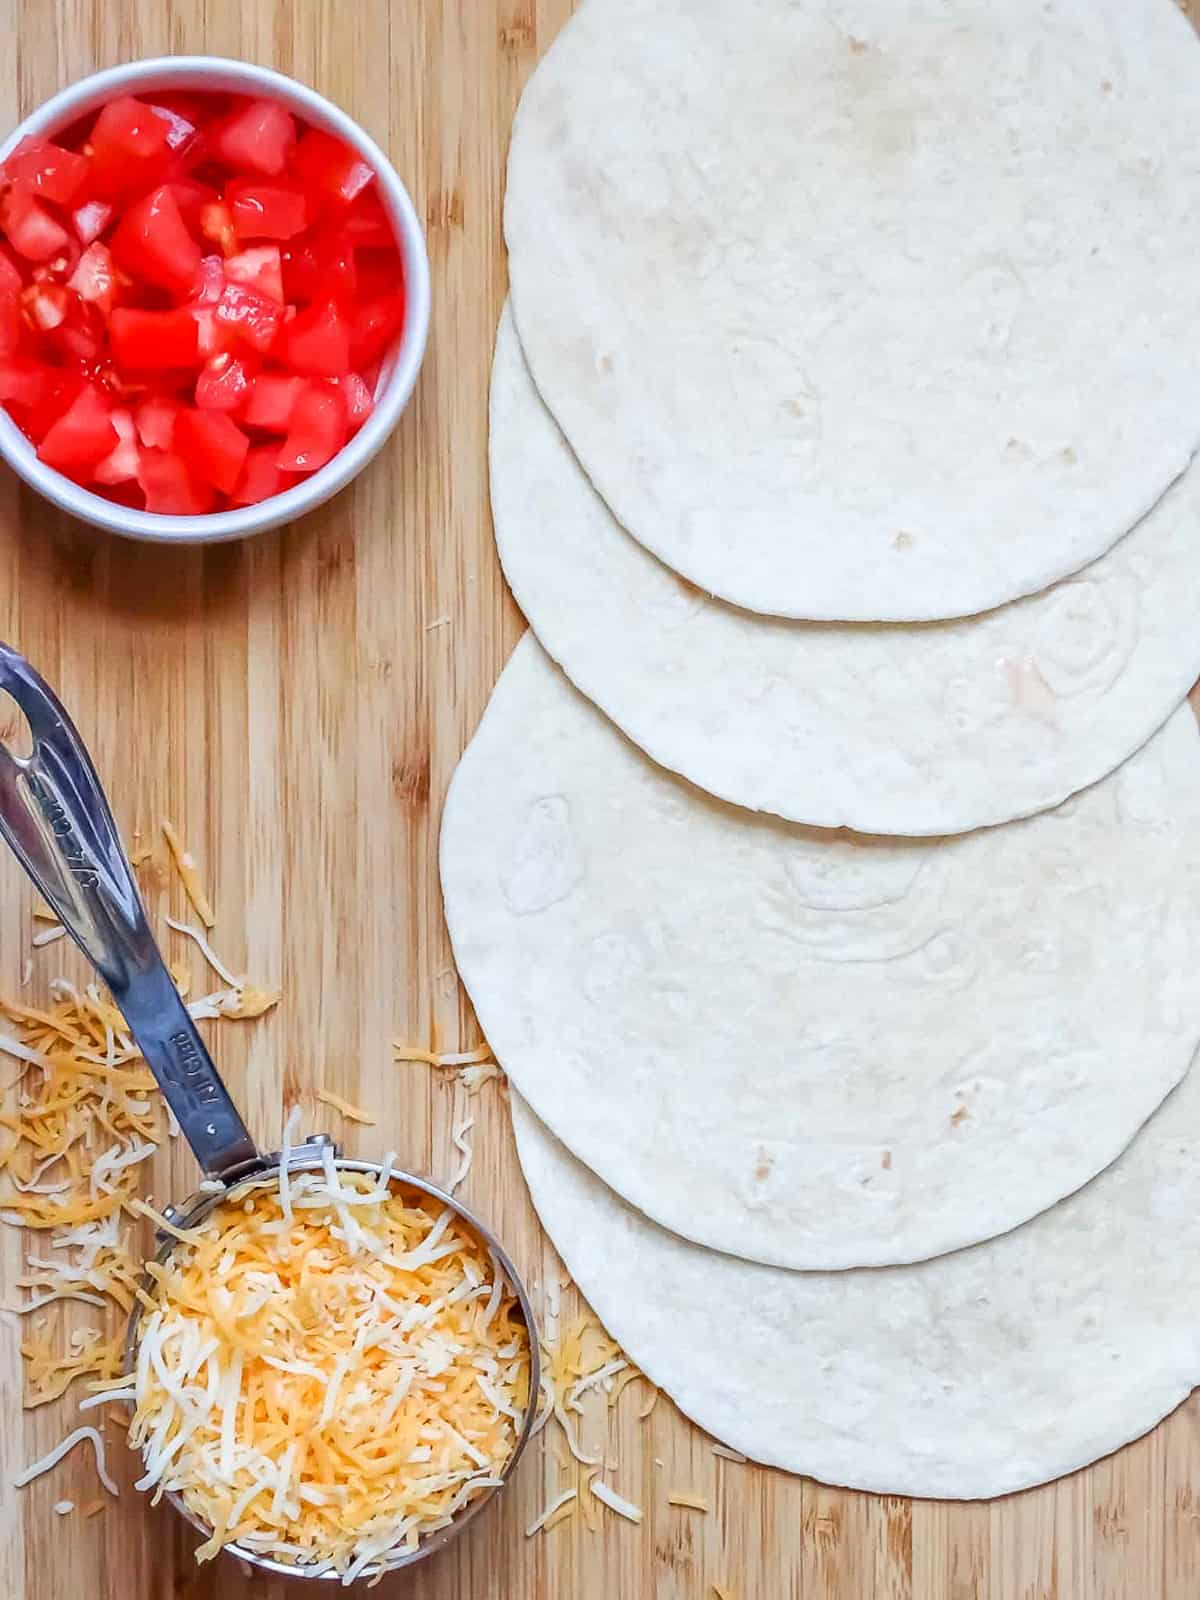 cheese, tomatoes, and tortillas on a cutting board